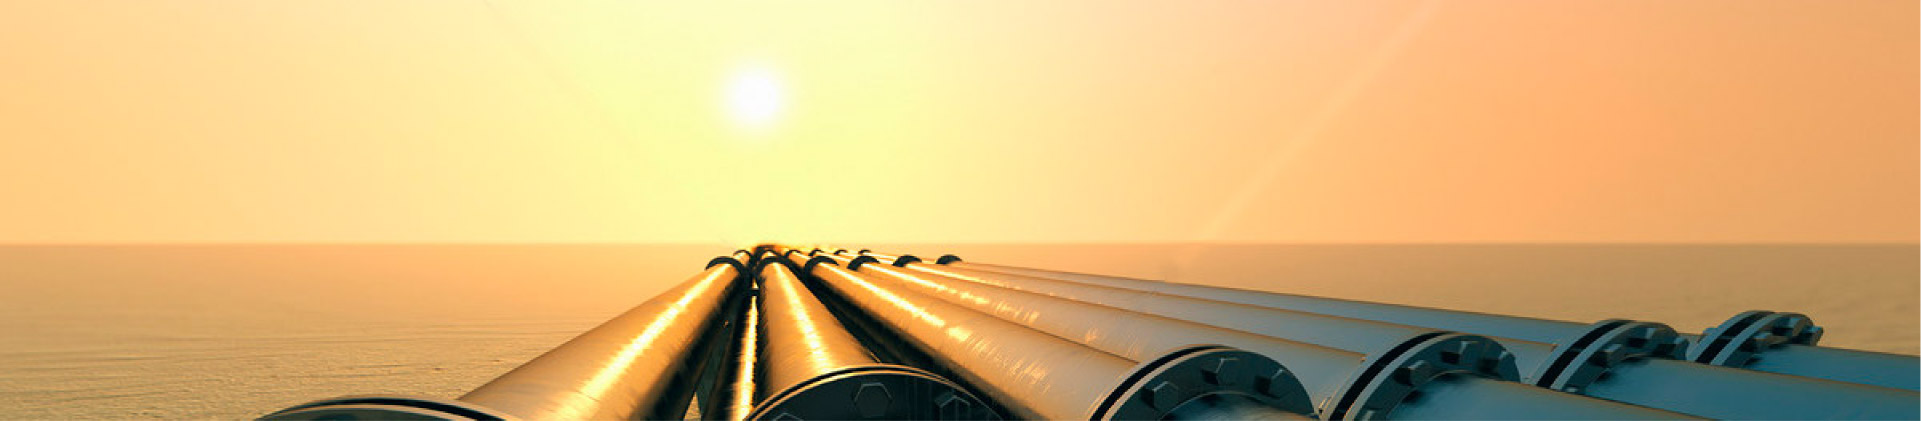 How to View the Price of Oil and Gas in the International Market